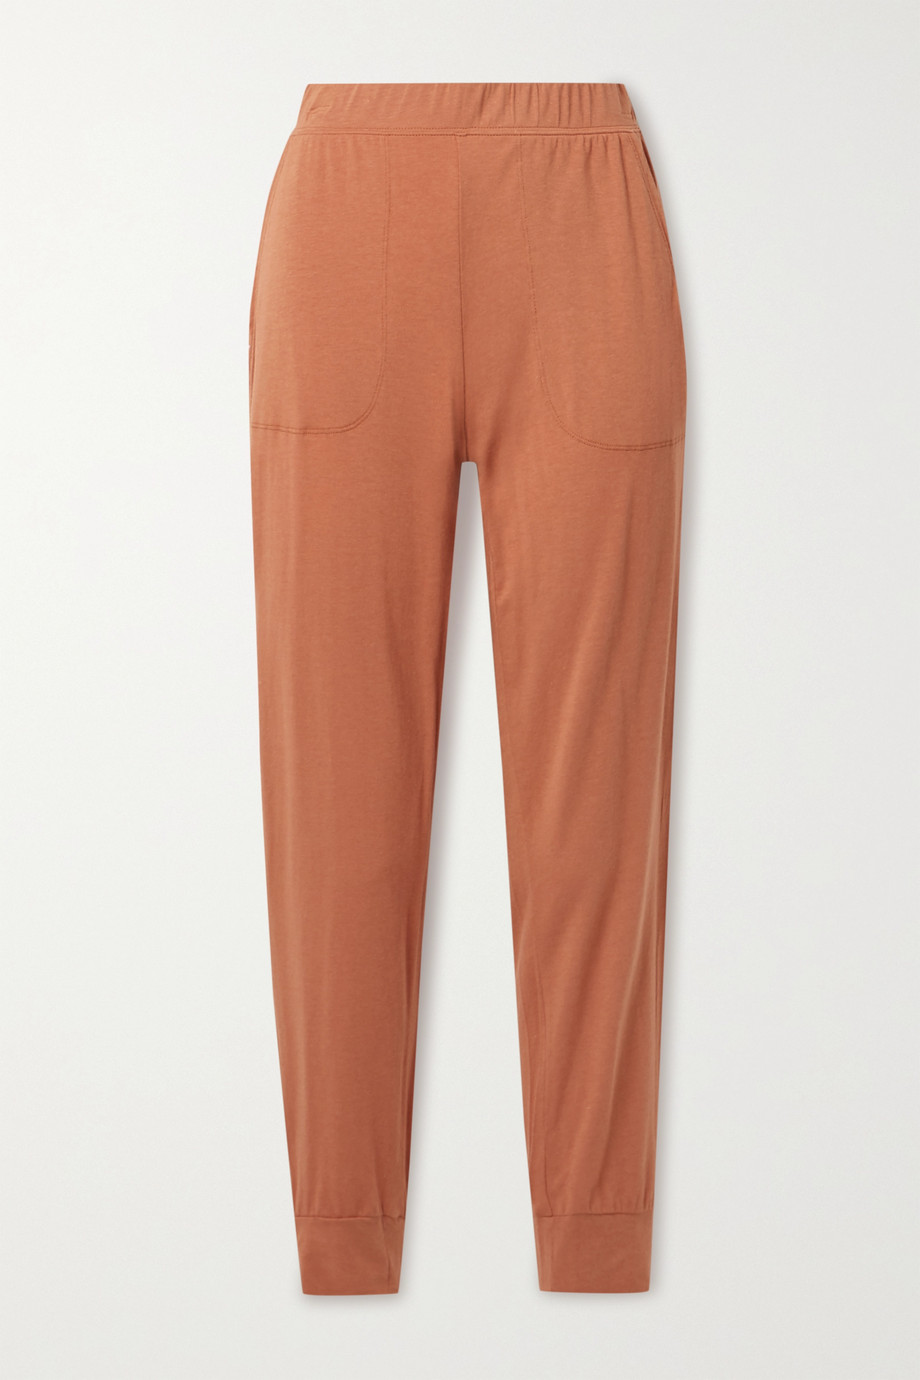 SKIN Moira stretch Pima cotton and modal-blend track pants